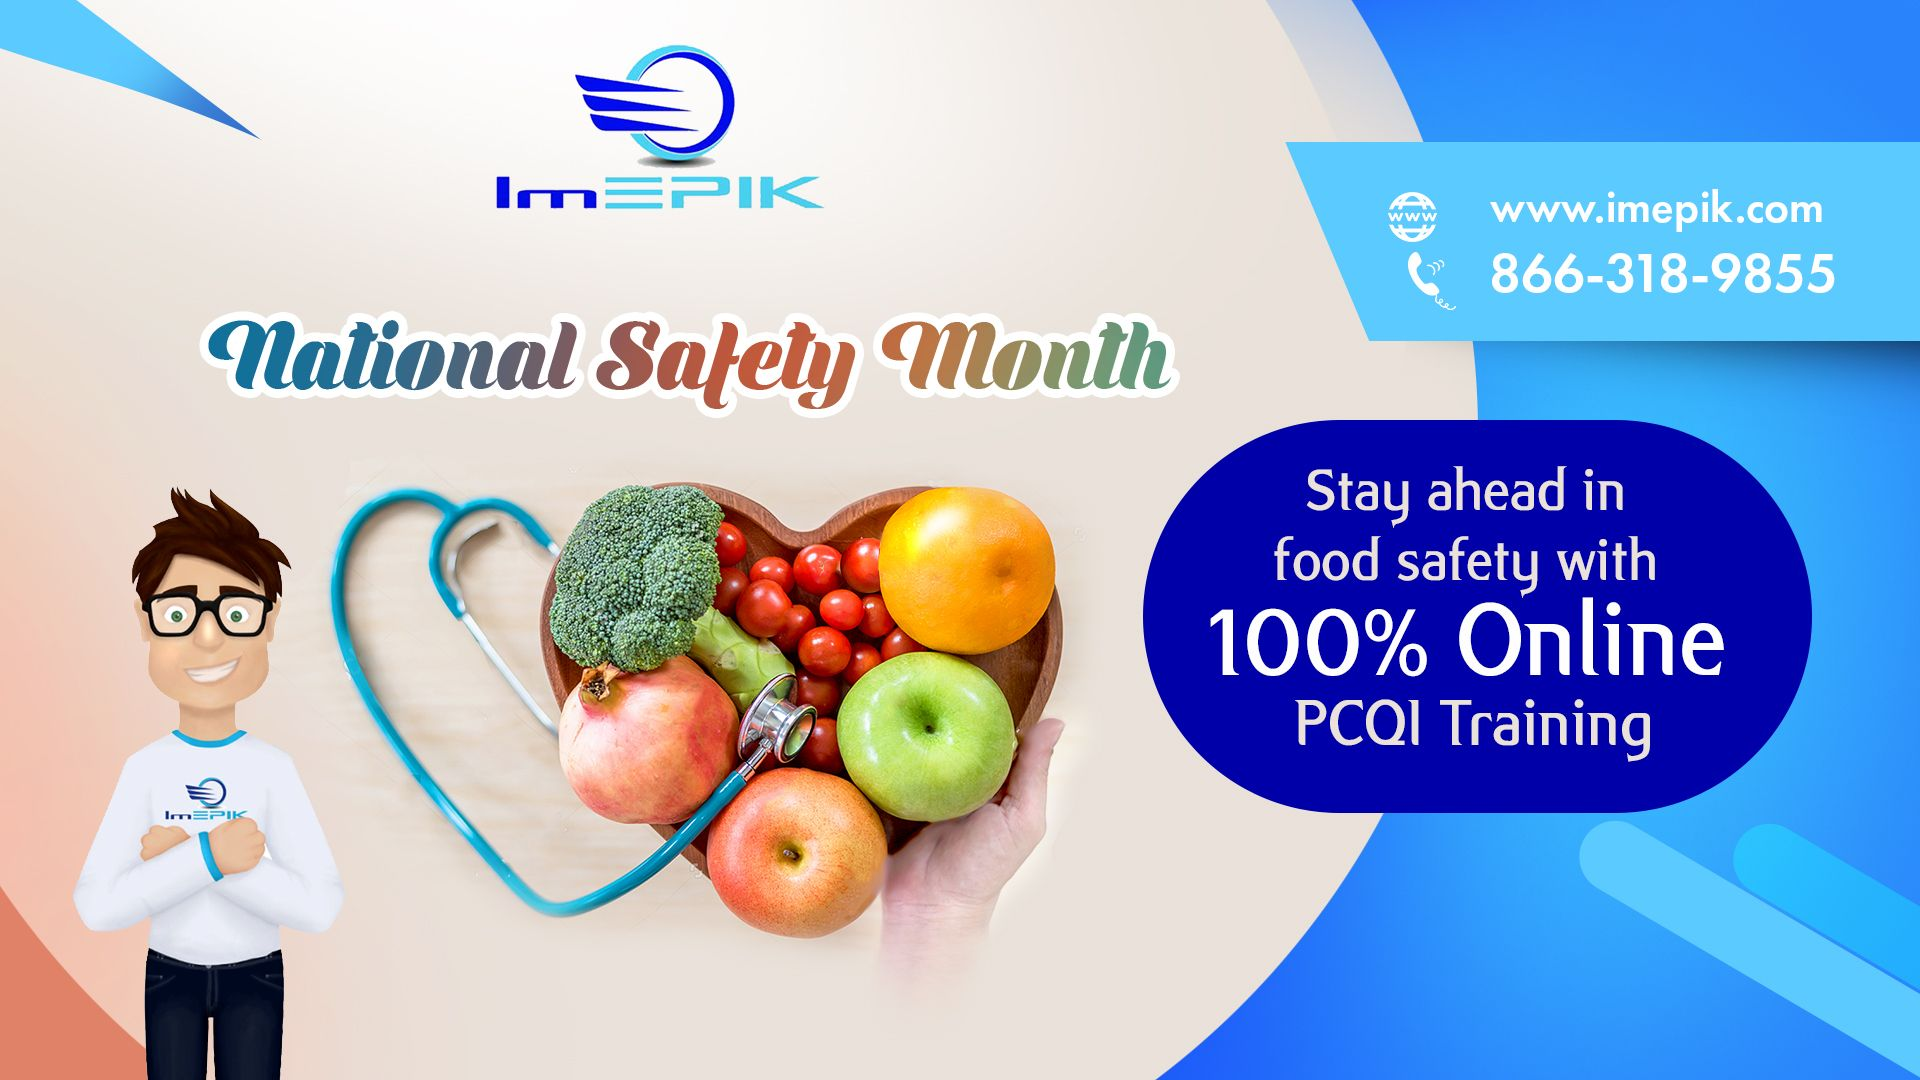 Create A Strong Food Safety Culture To Protect The Public And Your Company Find Out More Nationalsafetymonth Pcqi Onlinetraining Ime Food Safety